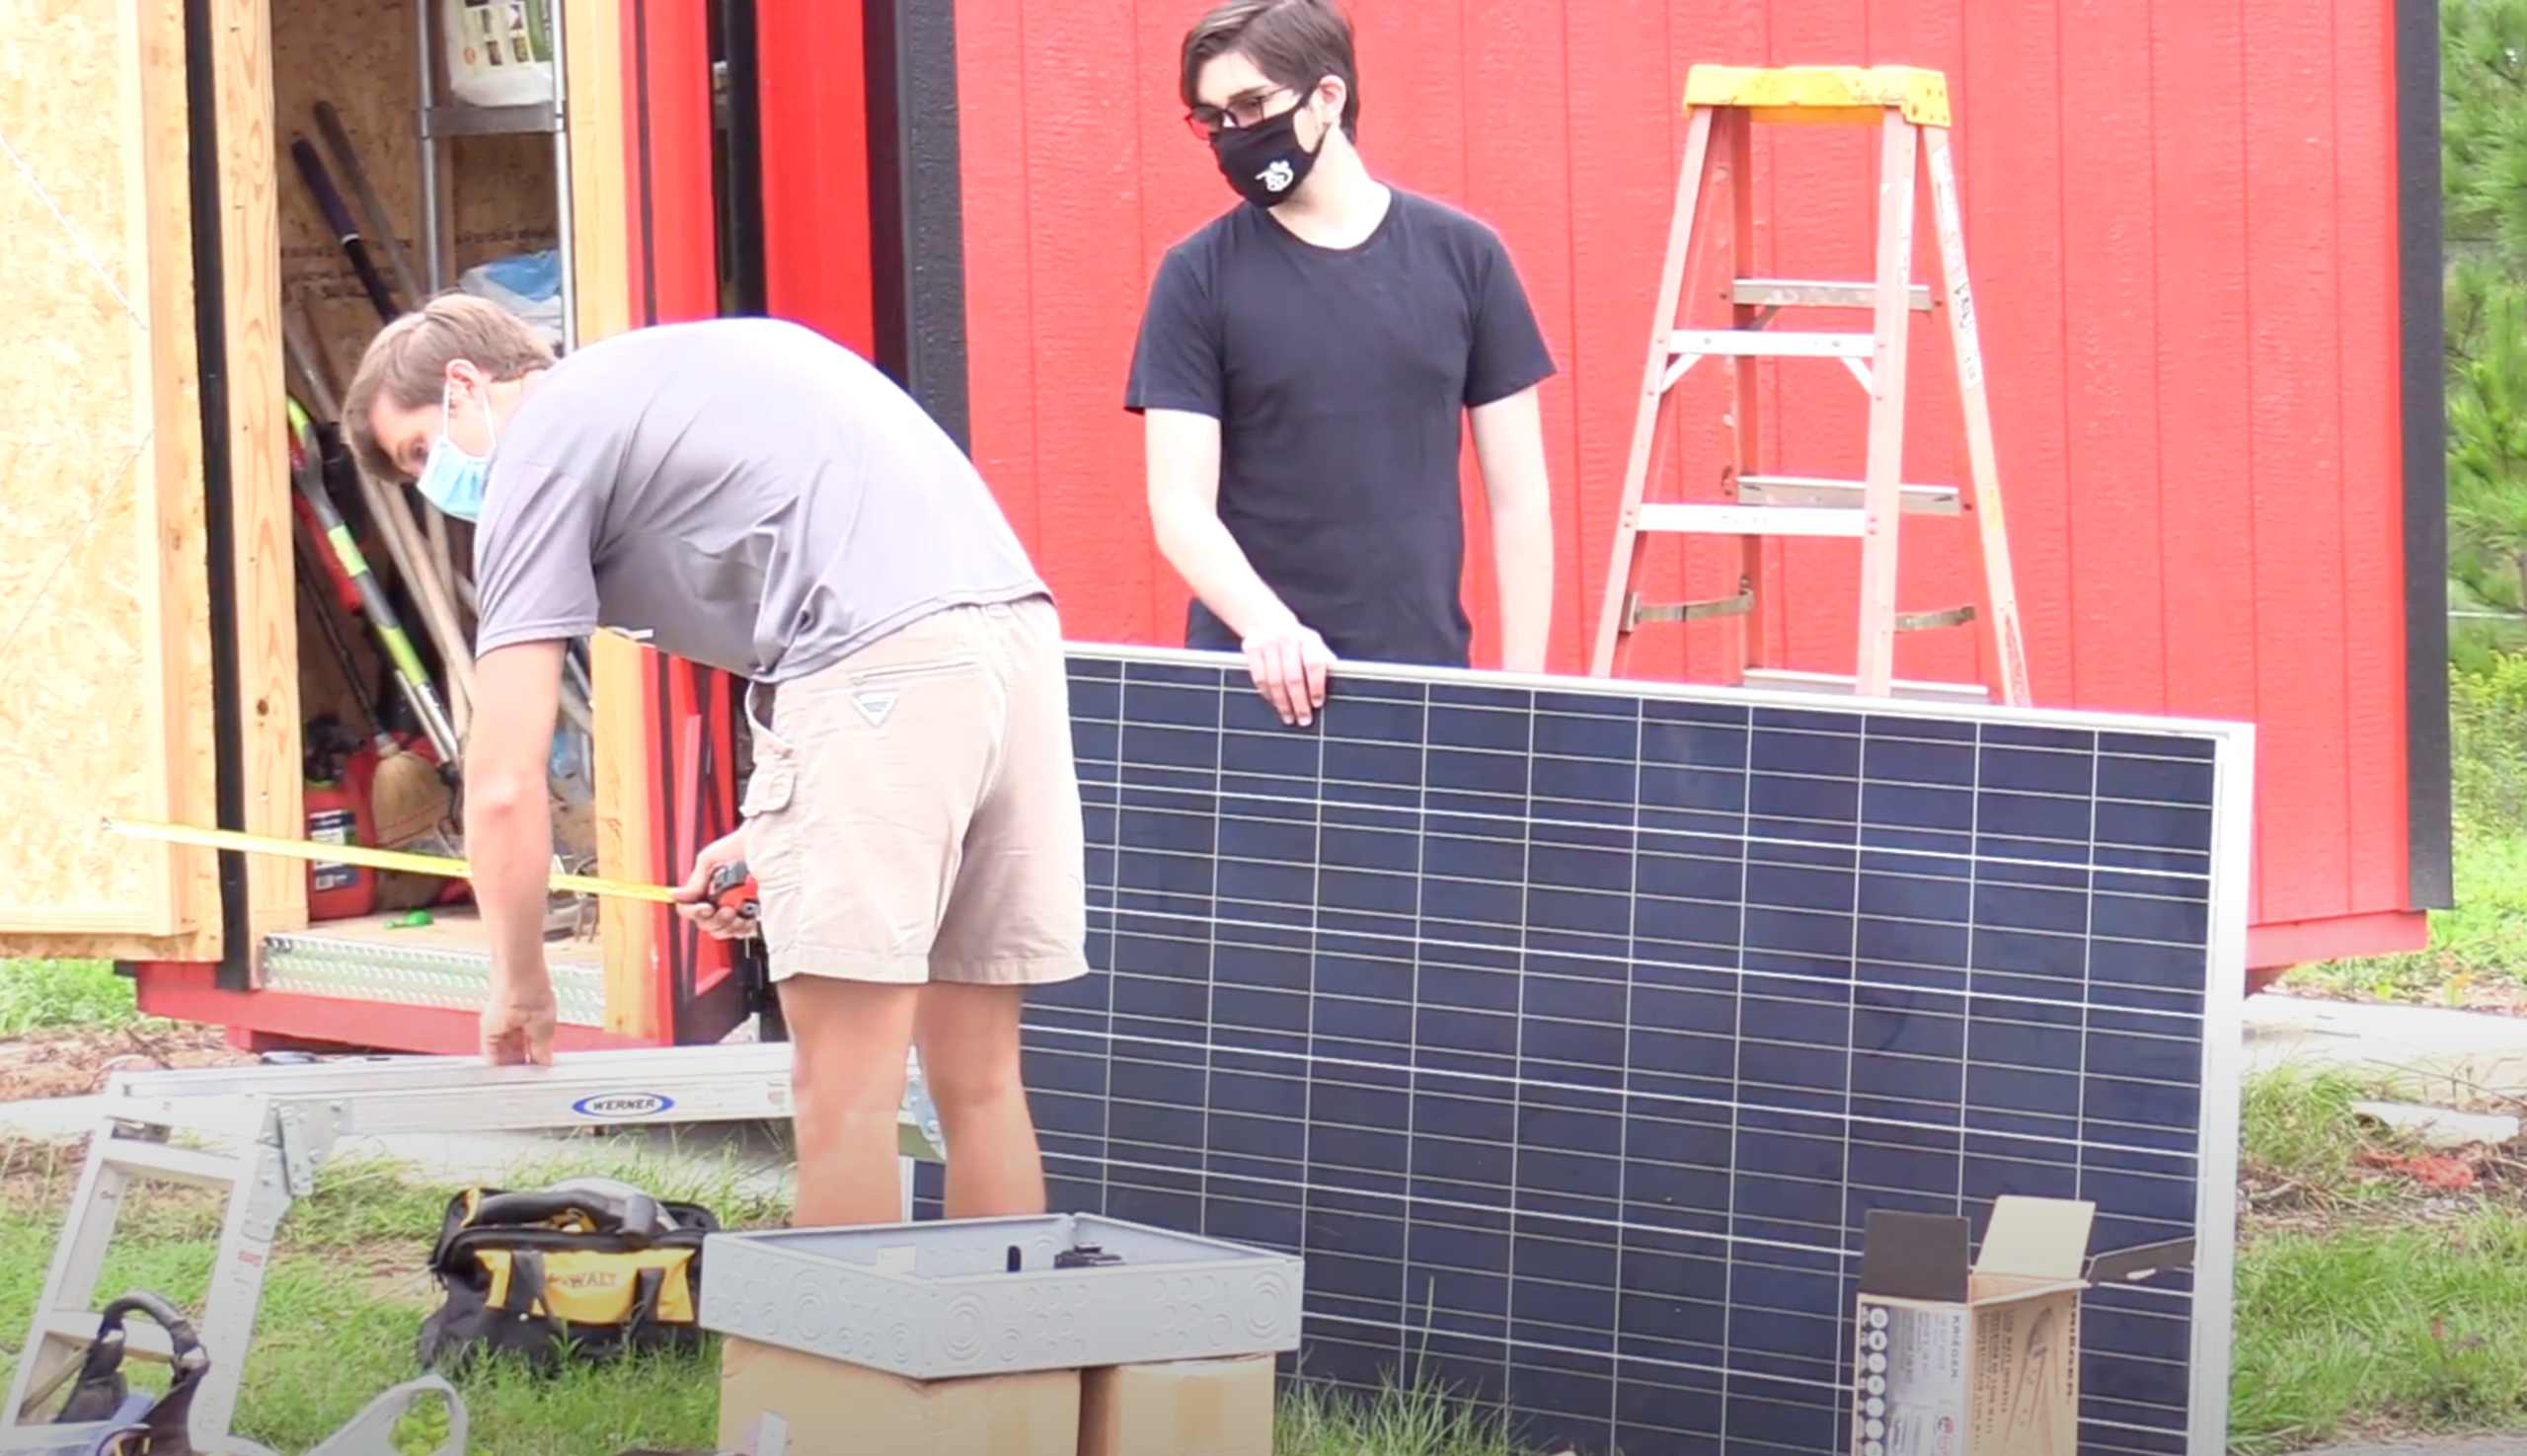 Physics students working on a solar panel.